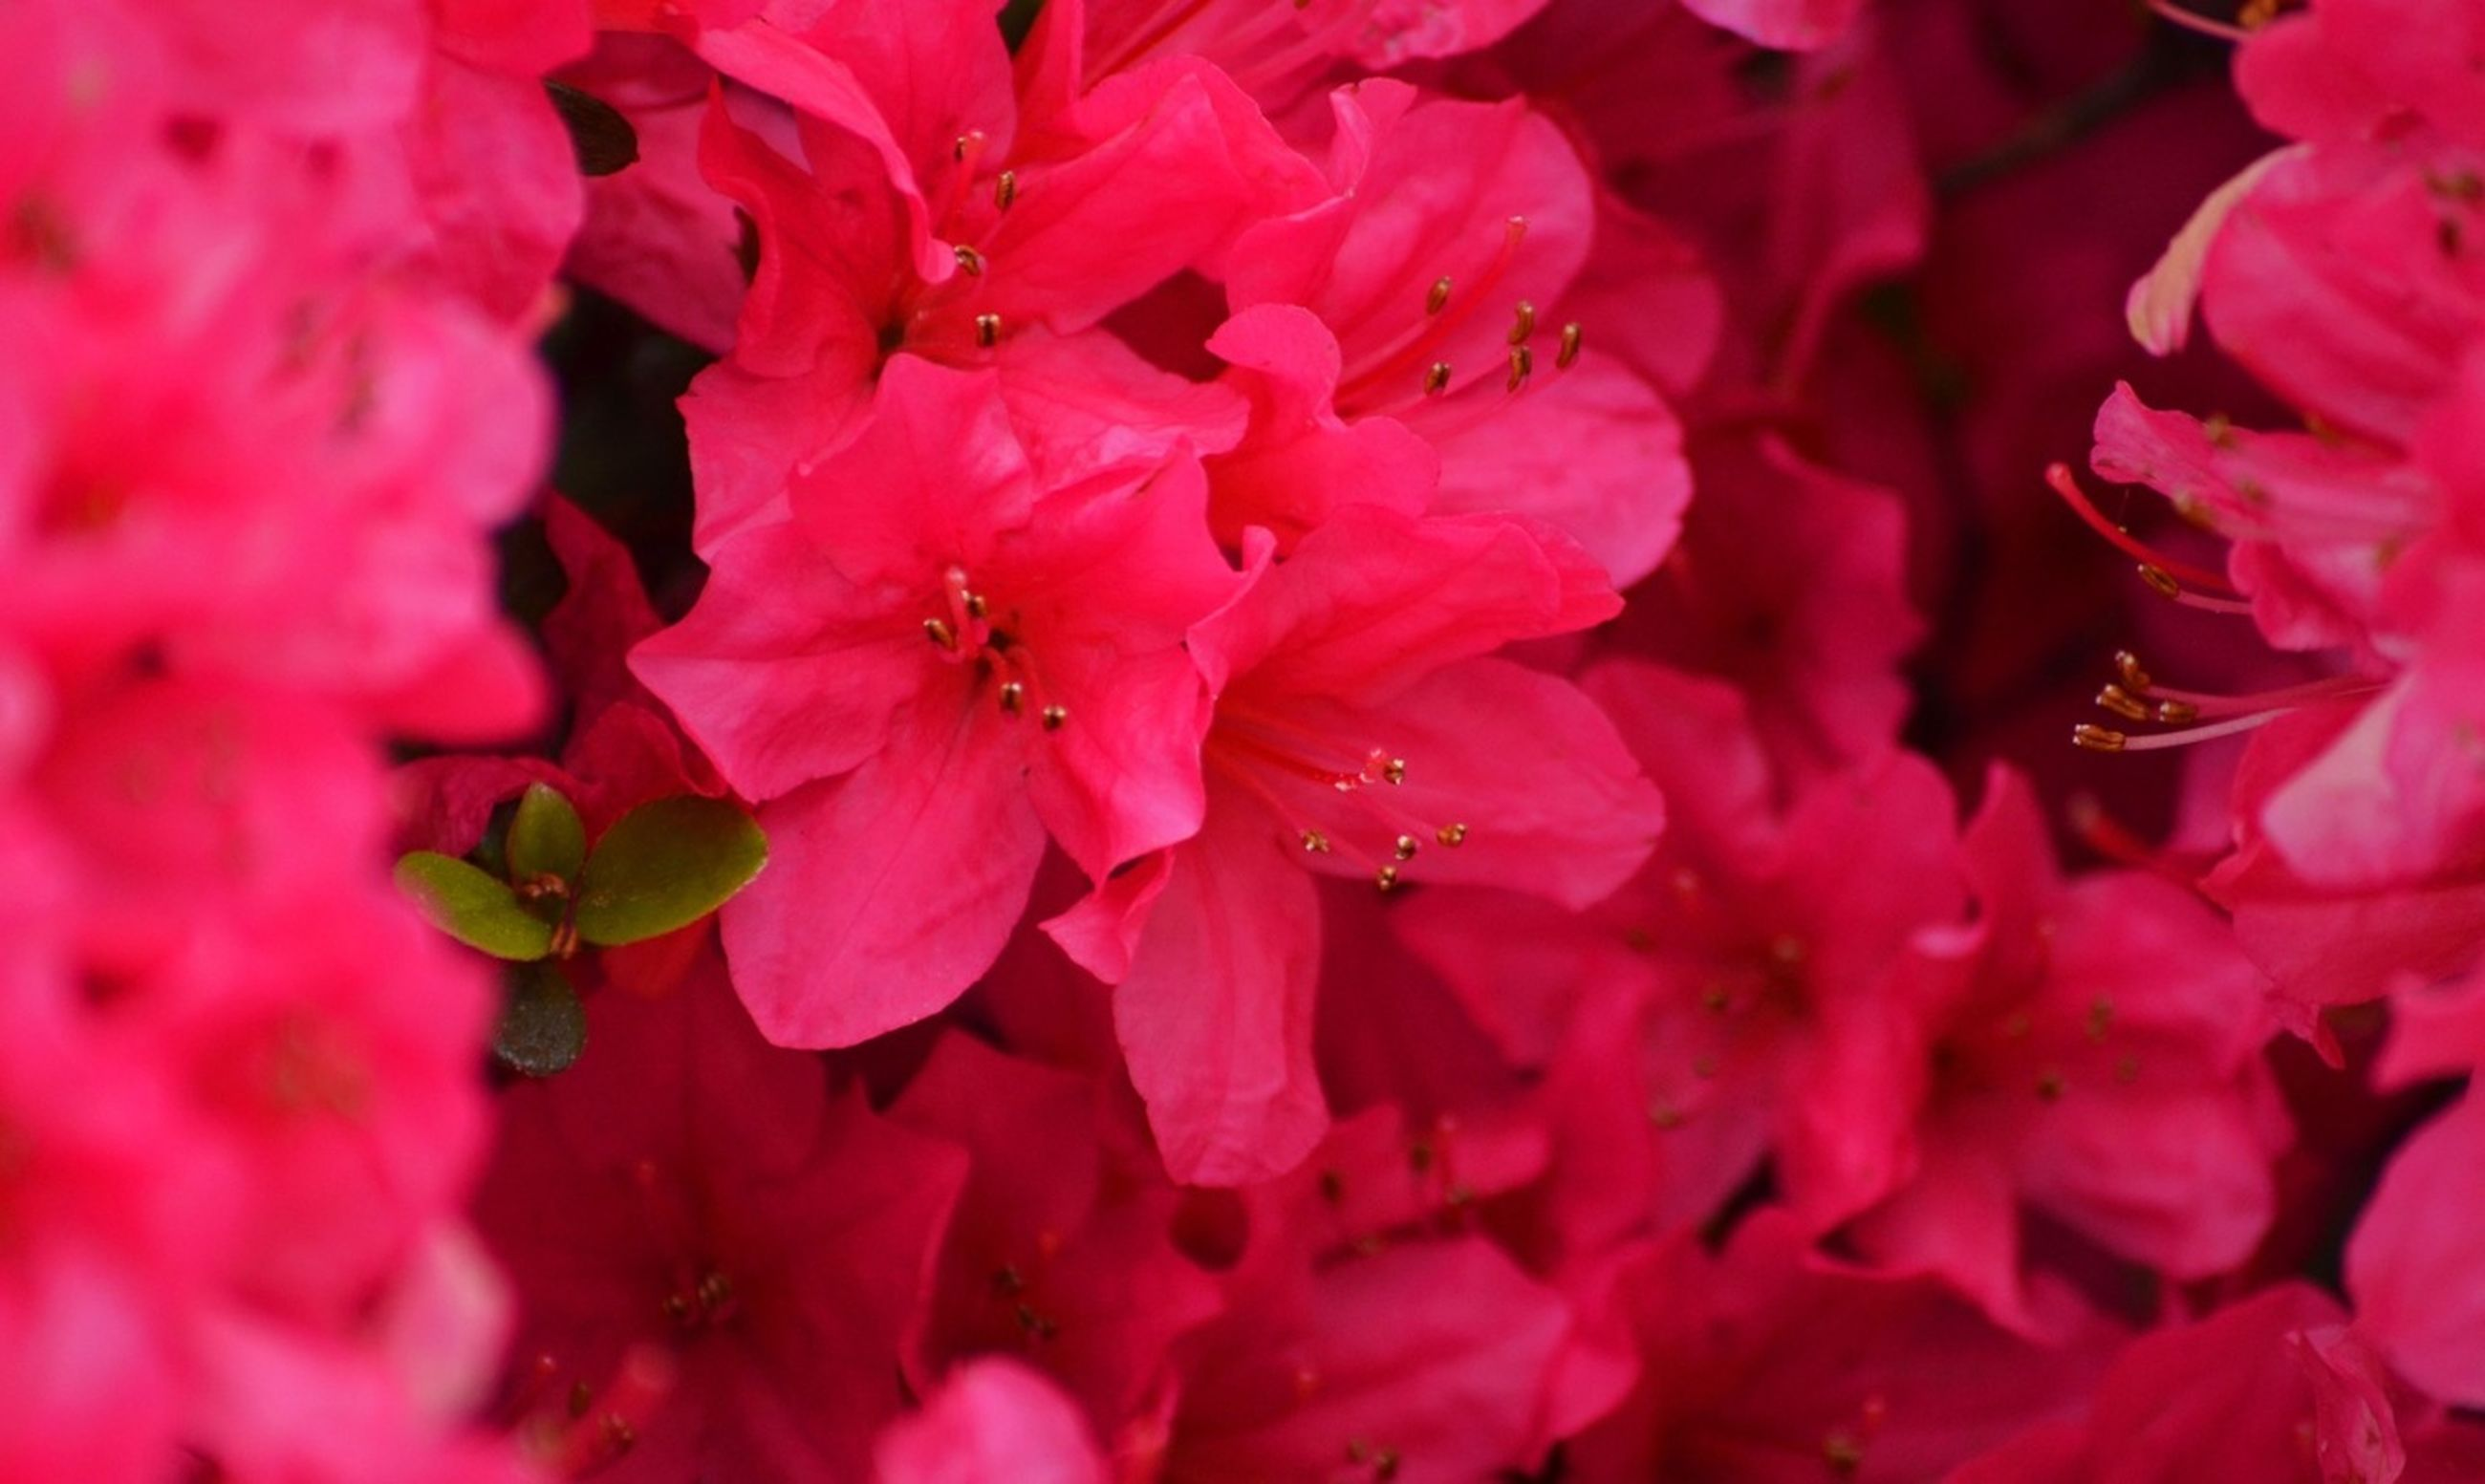 flower, freshness, pink color, petal, fragility, growth, beauty in nature, nature, close-up, flower head, backgrounds, blooming, pink, full frame, selective focus, plant, outdoors, focus on foreground, in bloom, red